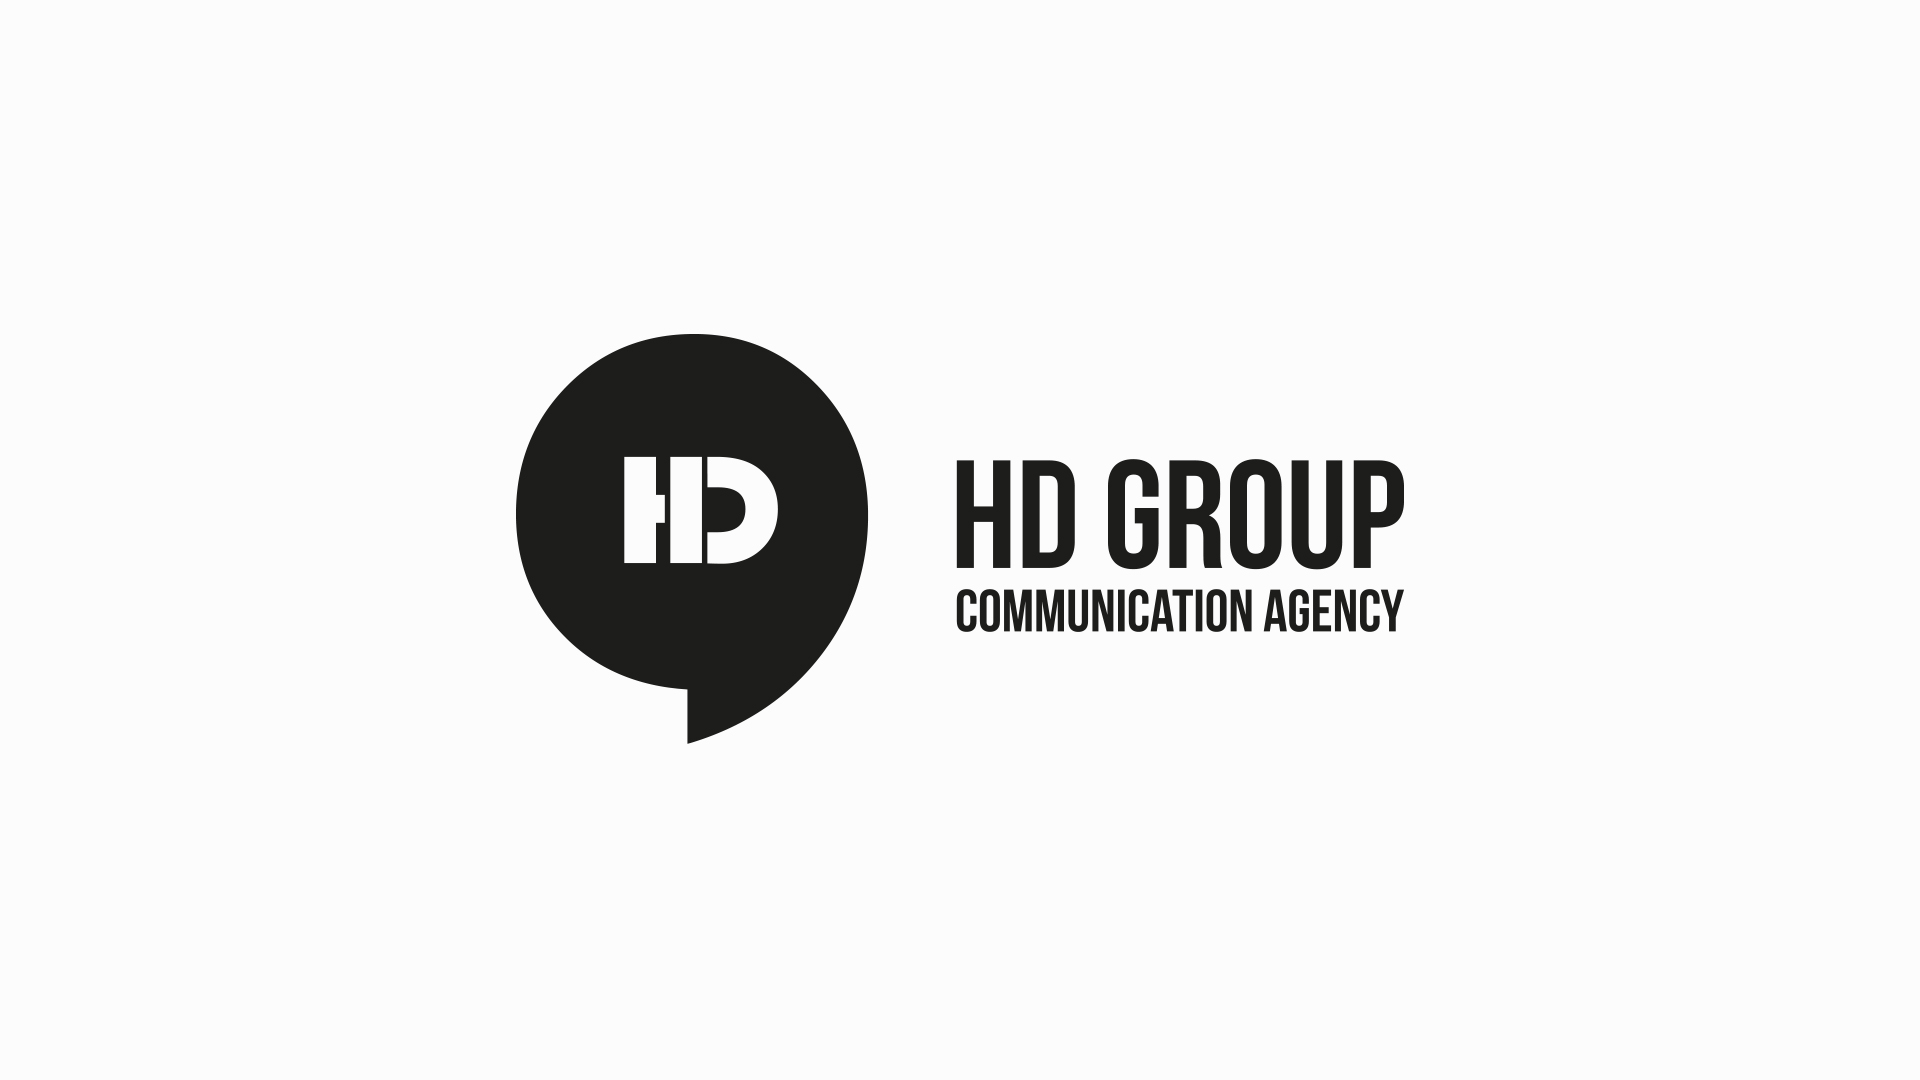 HD Group